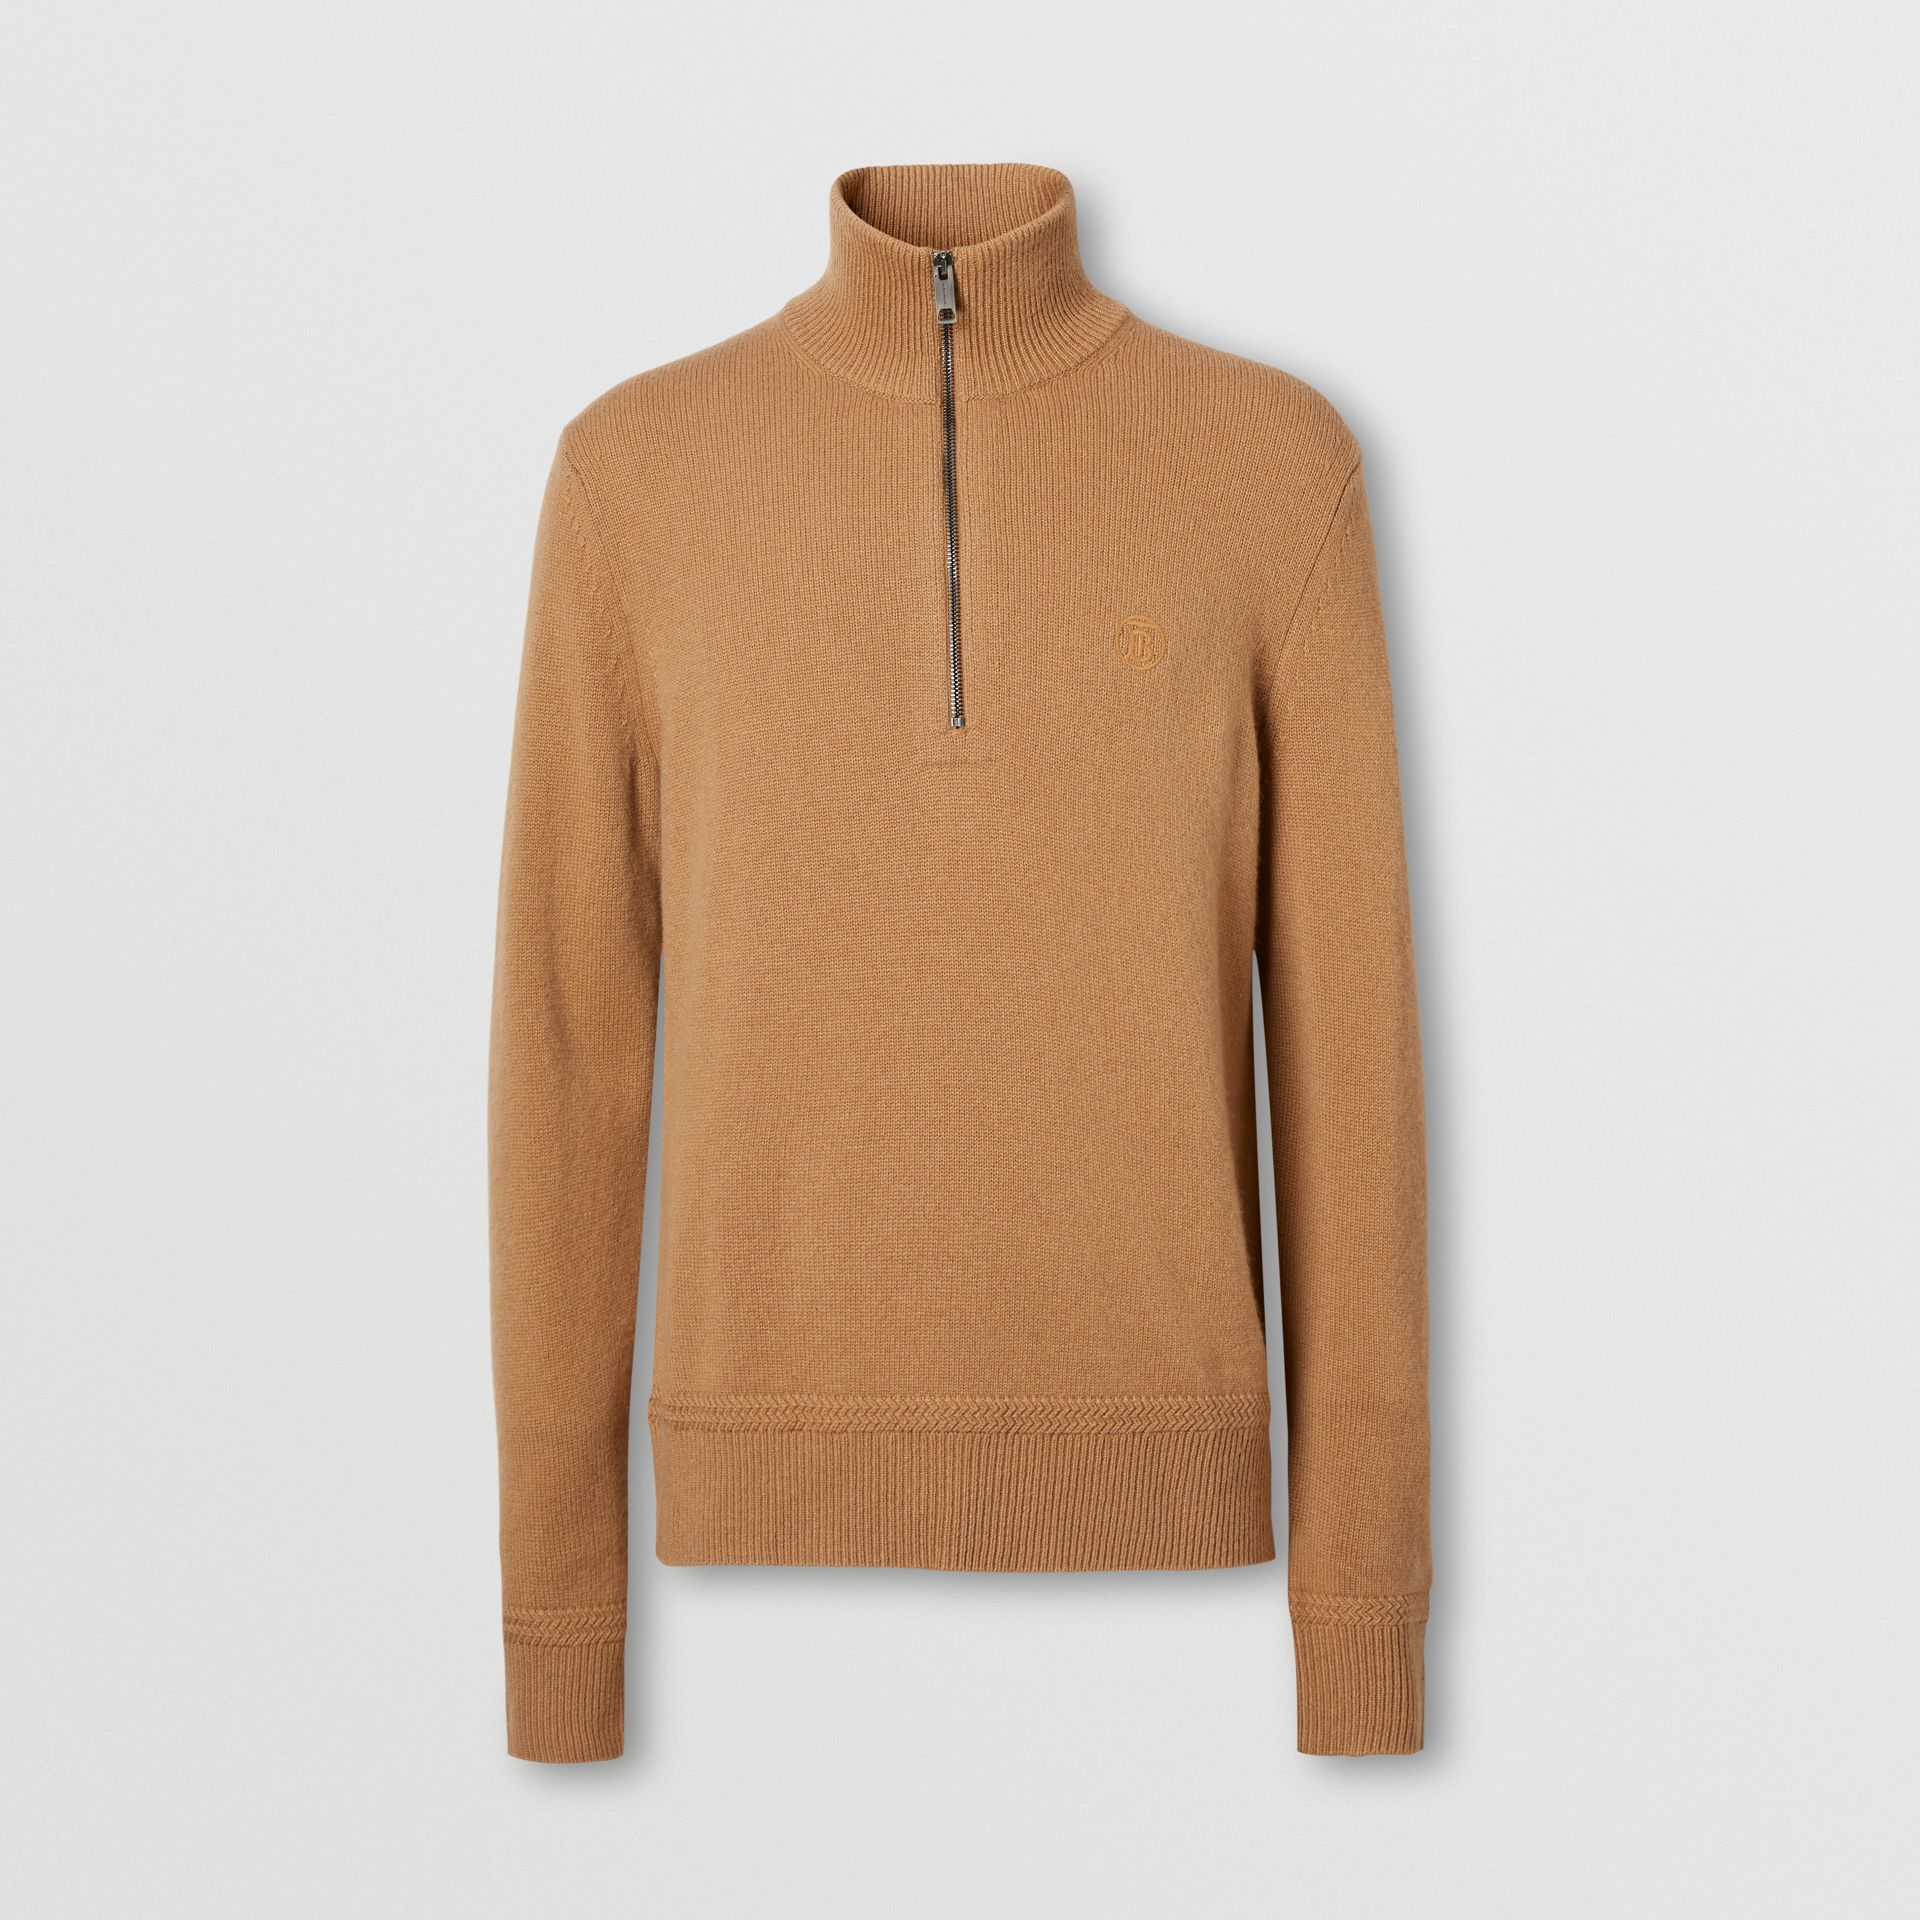 Monogram Motif Cashmere Funnel Neck Sweater in Camel - Men | Burberry - gallery image 3